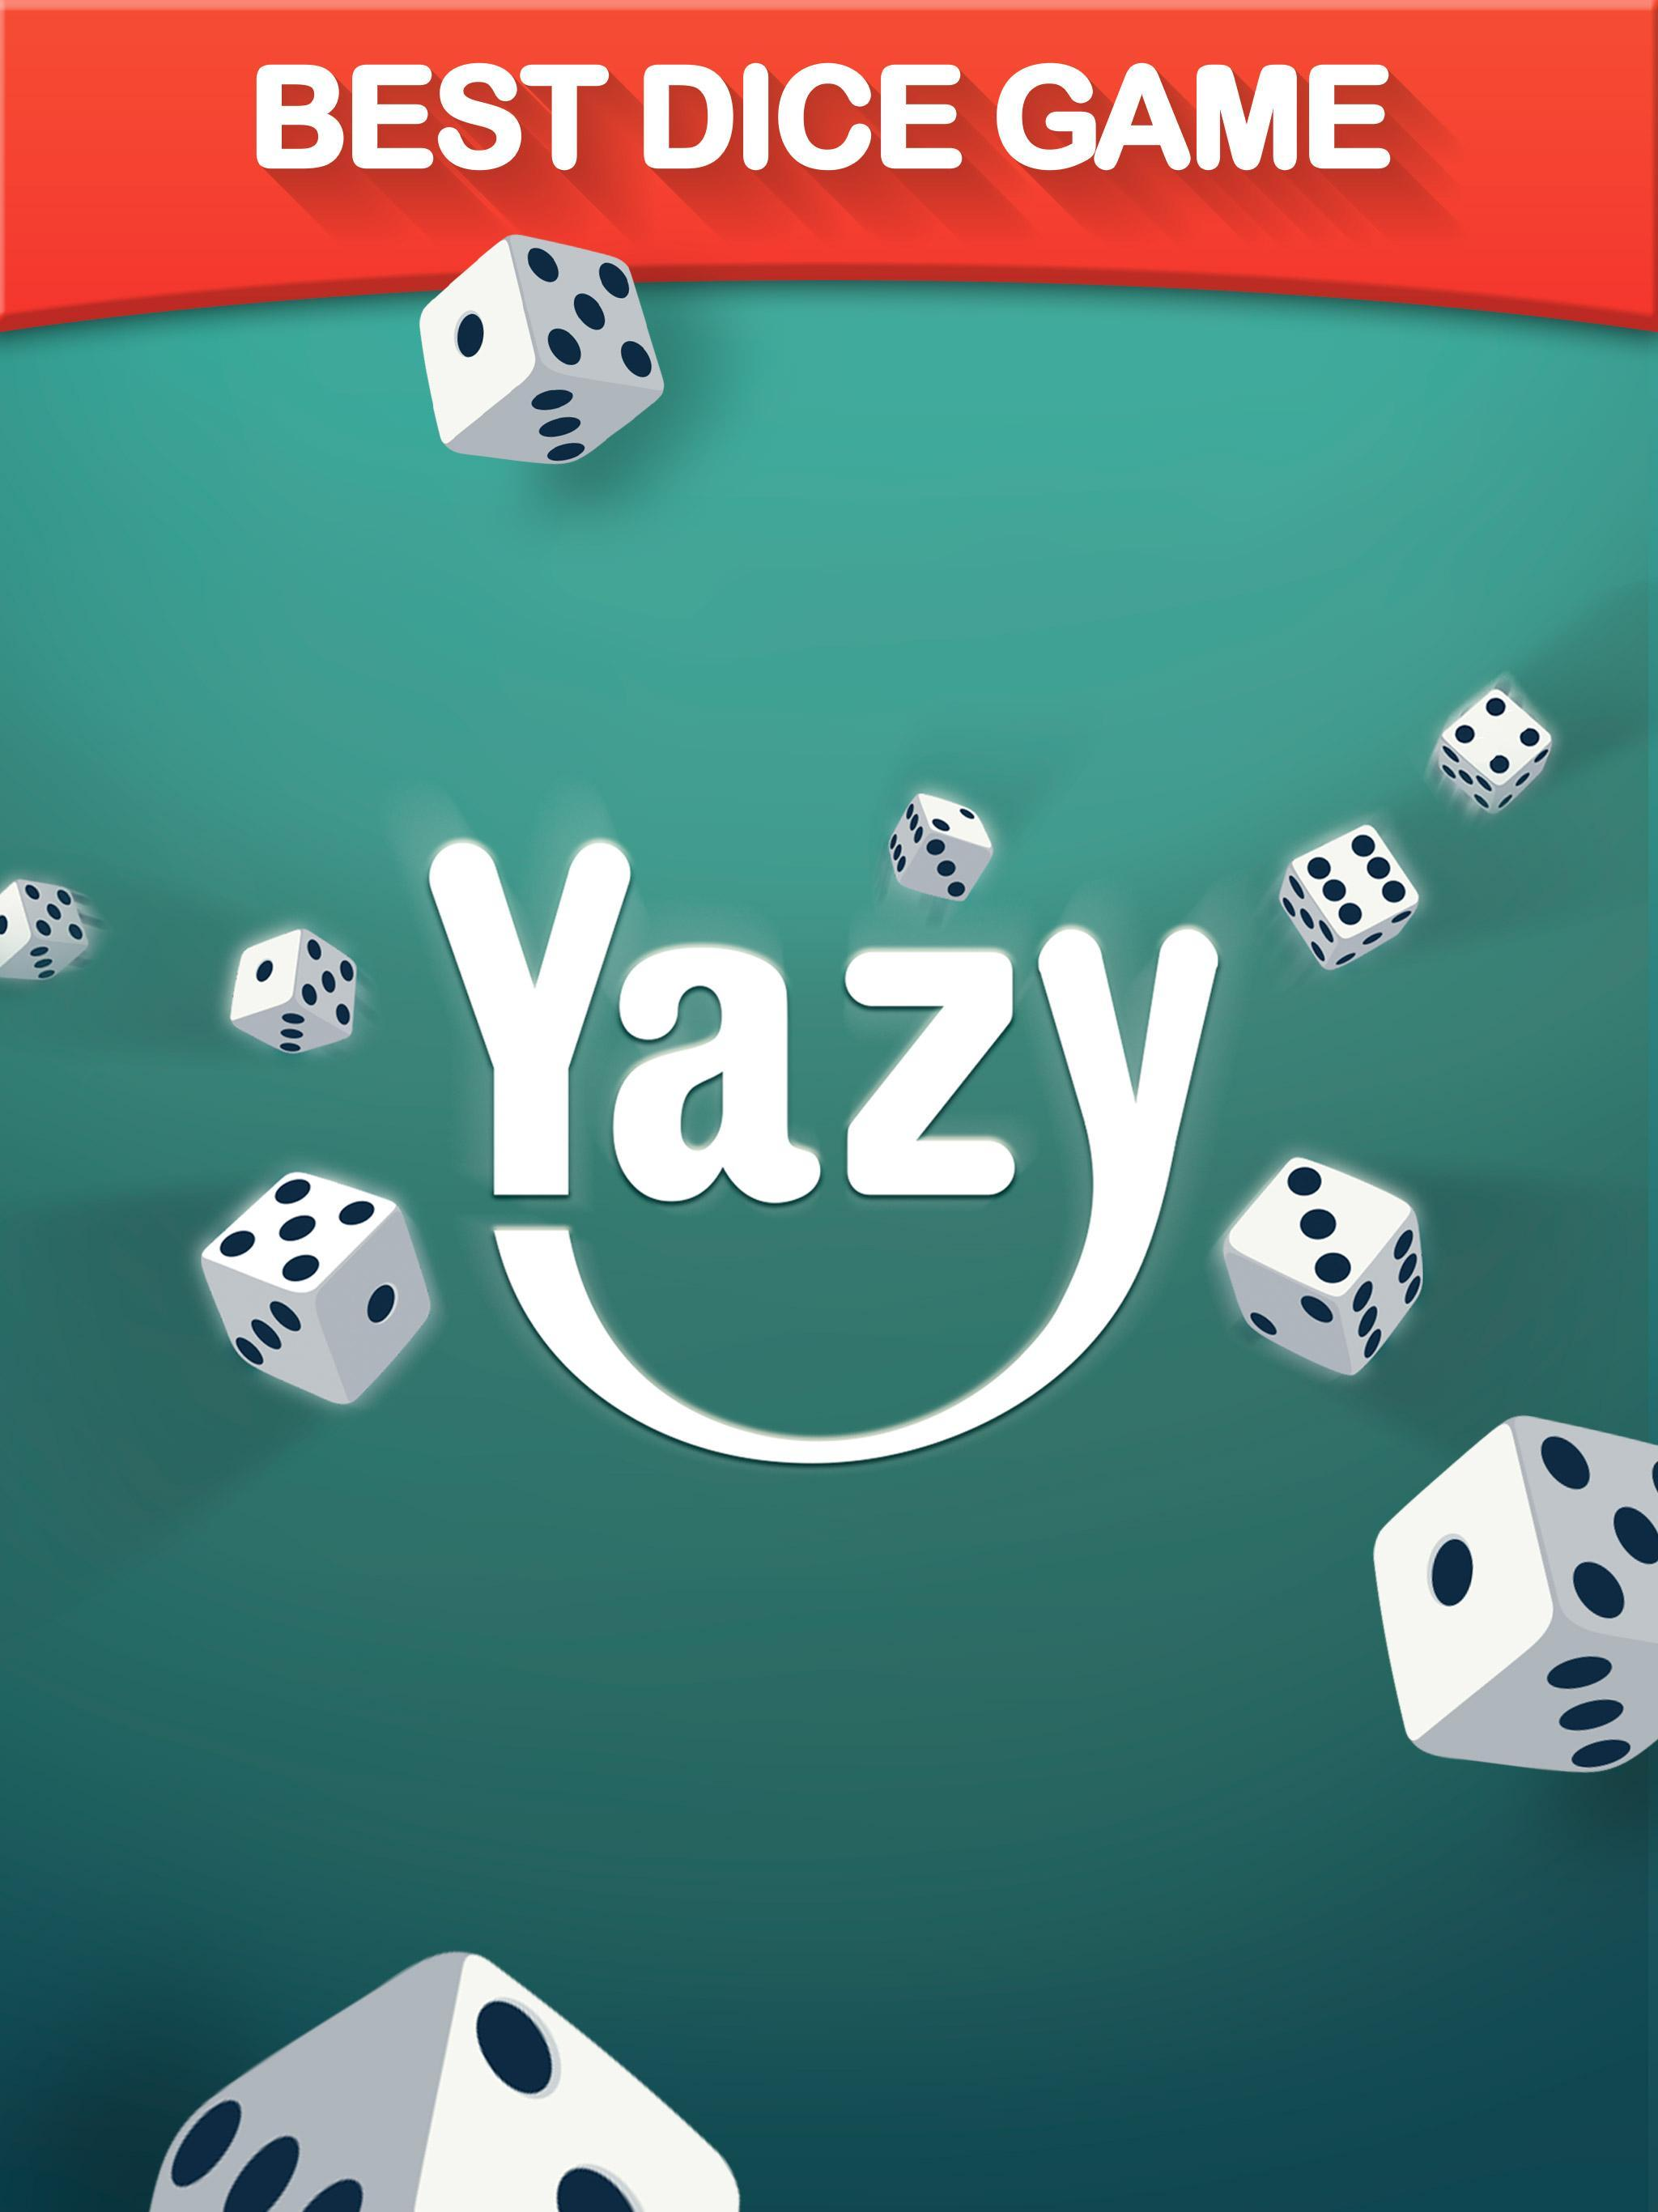 Yazy the best yatzy dice game 1.0.34 Screenshot 10